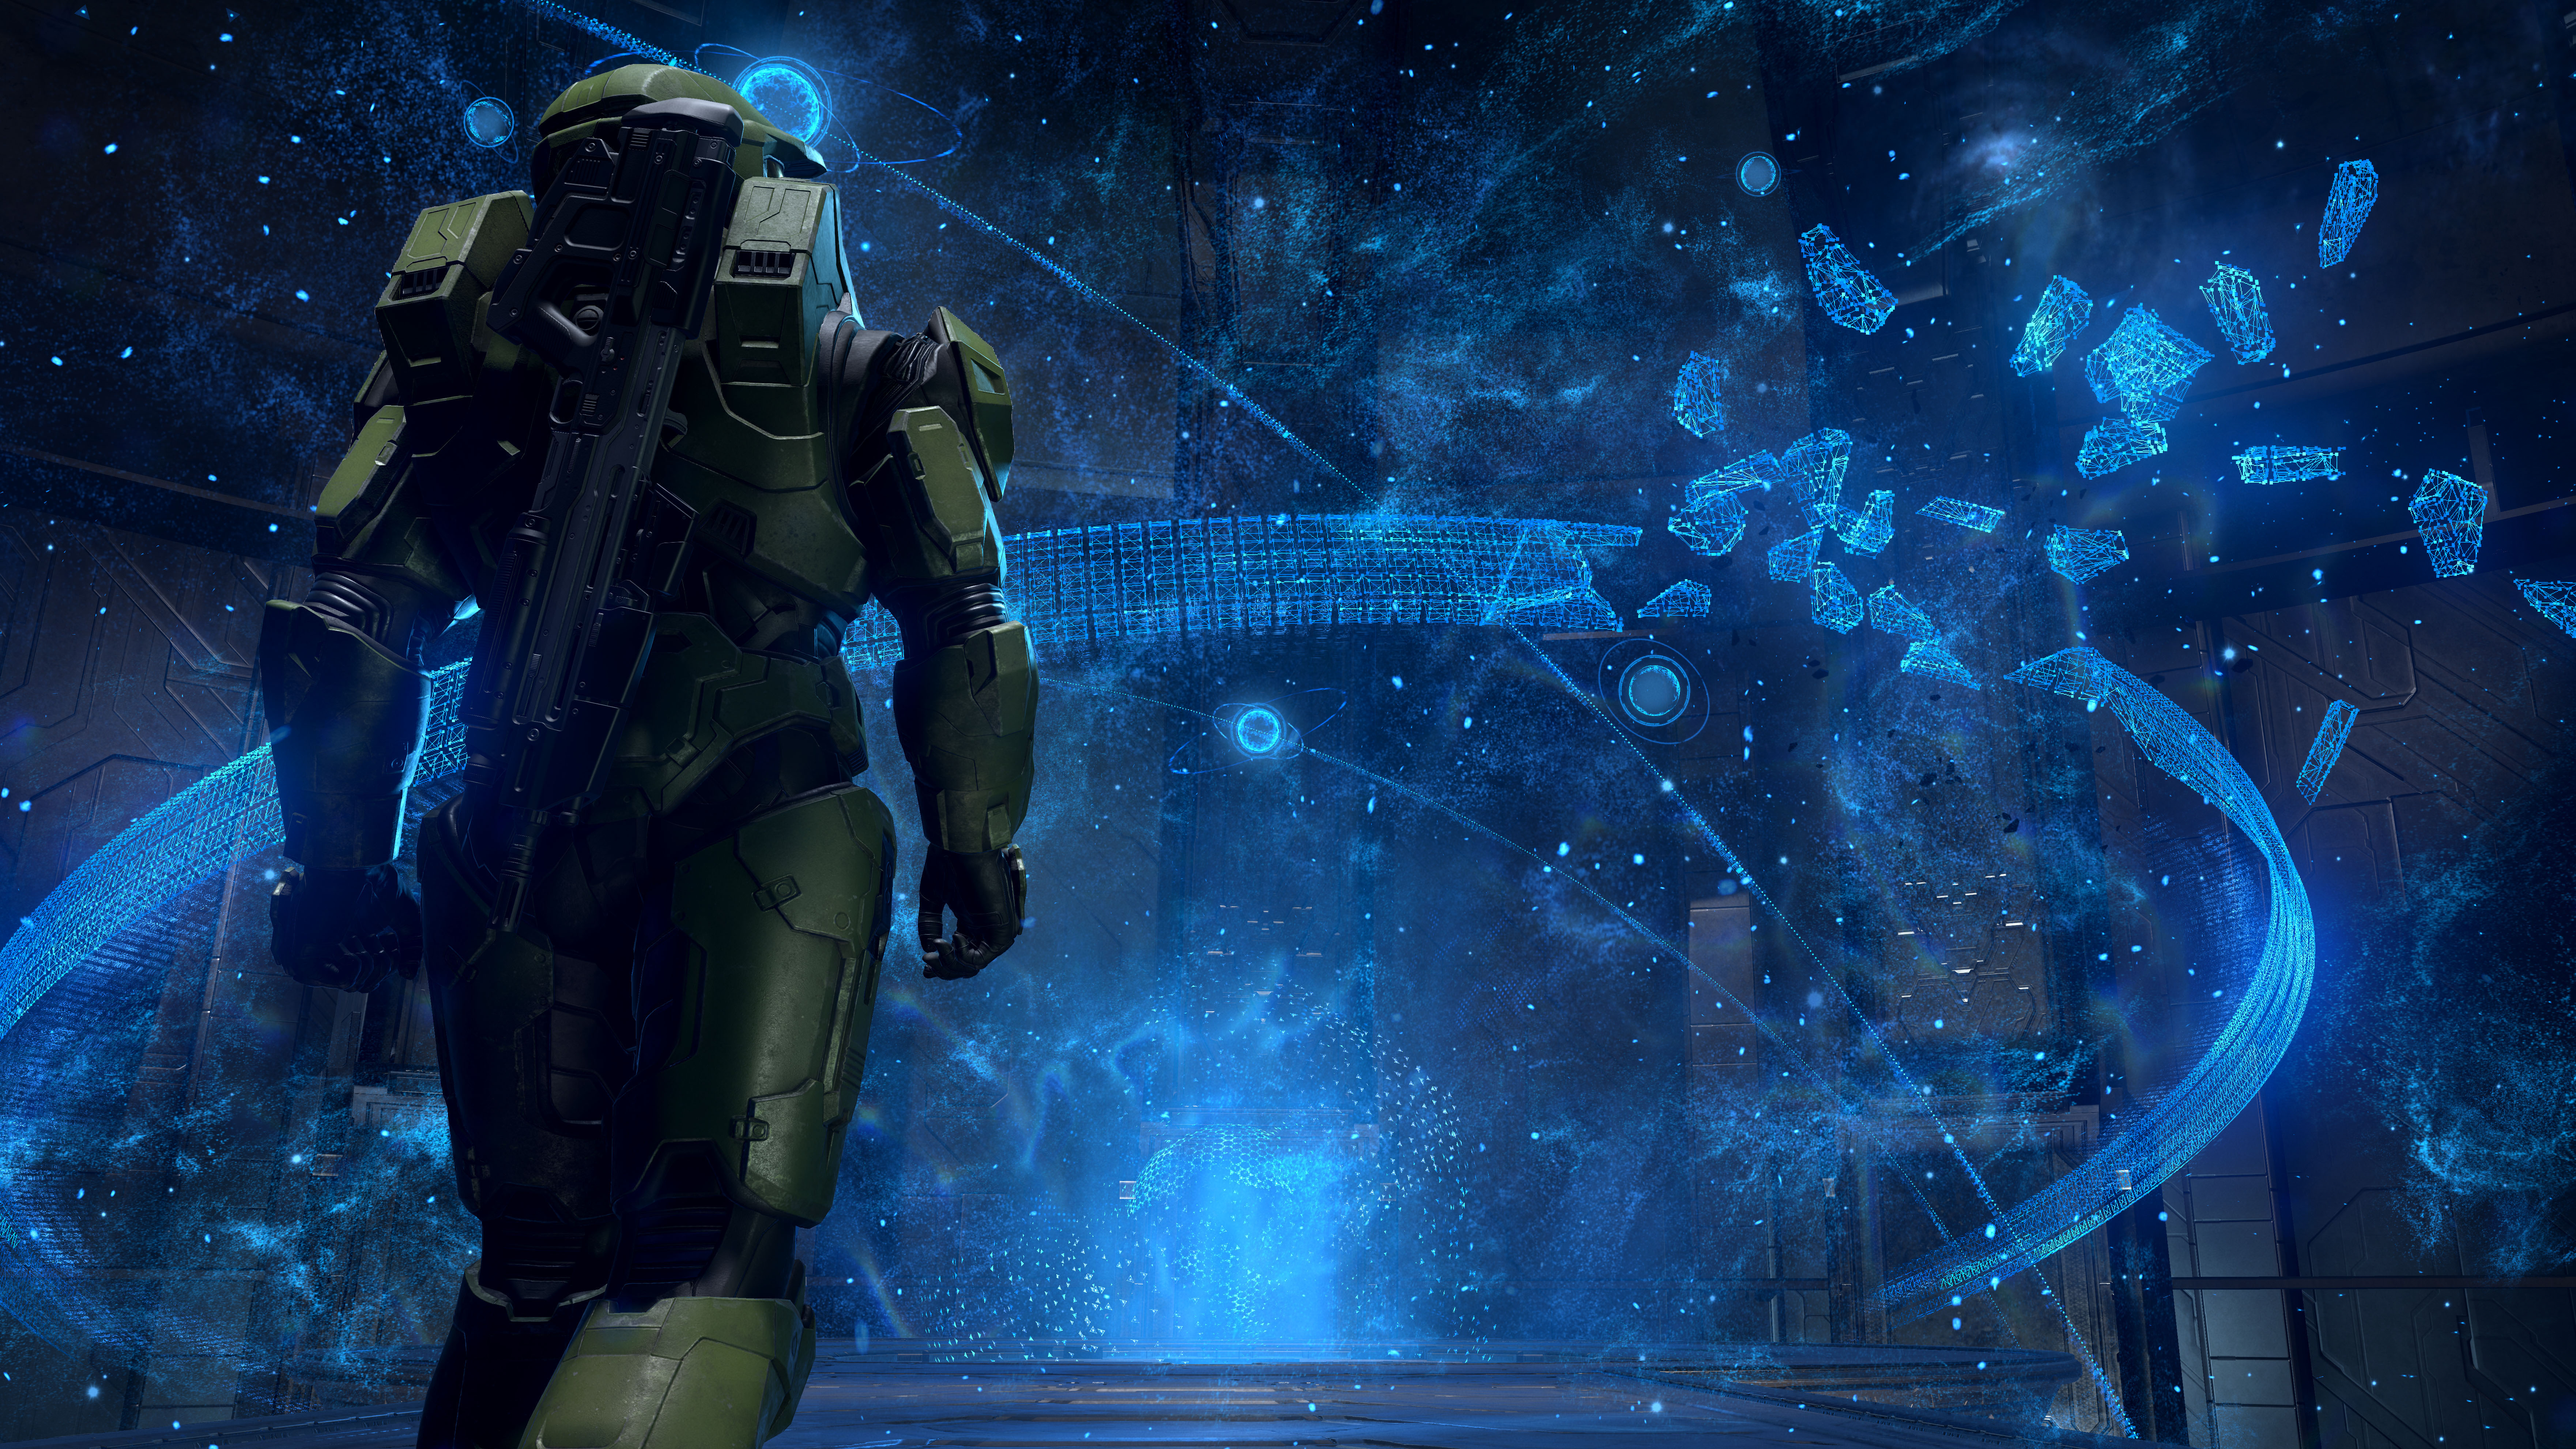 Halo Infinite devs promise hype train 'won't be slowing down' as new artwork is released